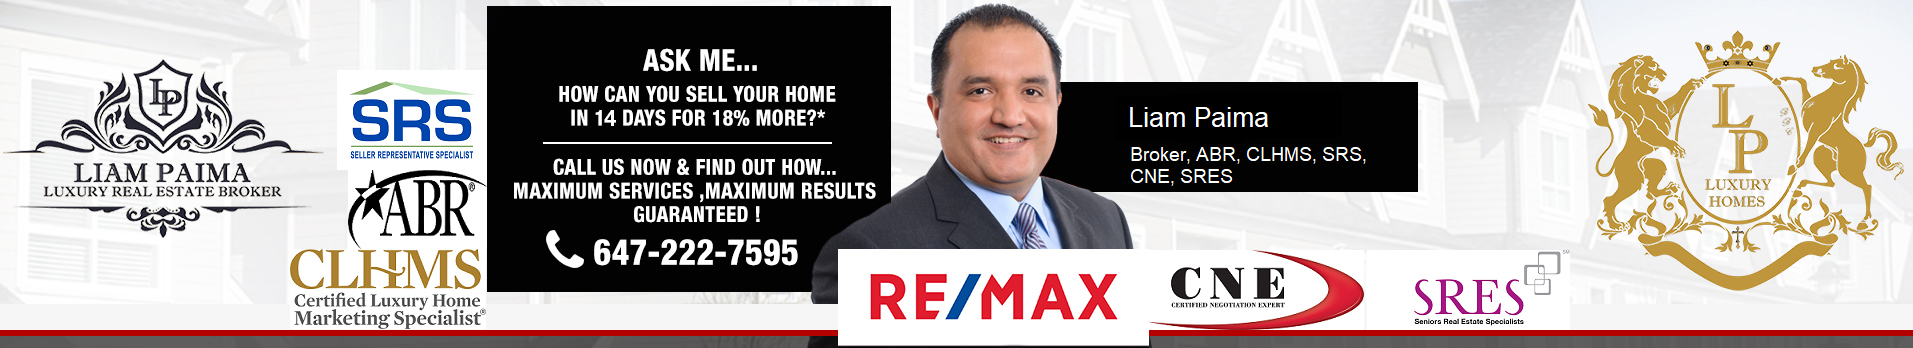 #1 Low Commission Real Estate Agent With Best Low Real Estate Commission Service In Toronto, Vaughan, Kleinburg, Oakville, Richmond Hill, Mississauga, Brampton, Milton, Caledon, Georgetown, Burlington, Orangeville, Markham - Page - 32